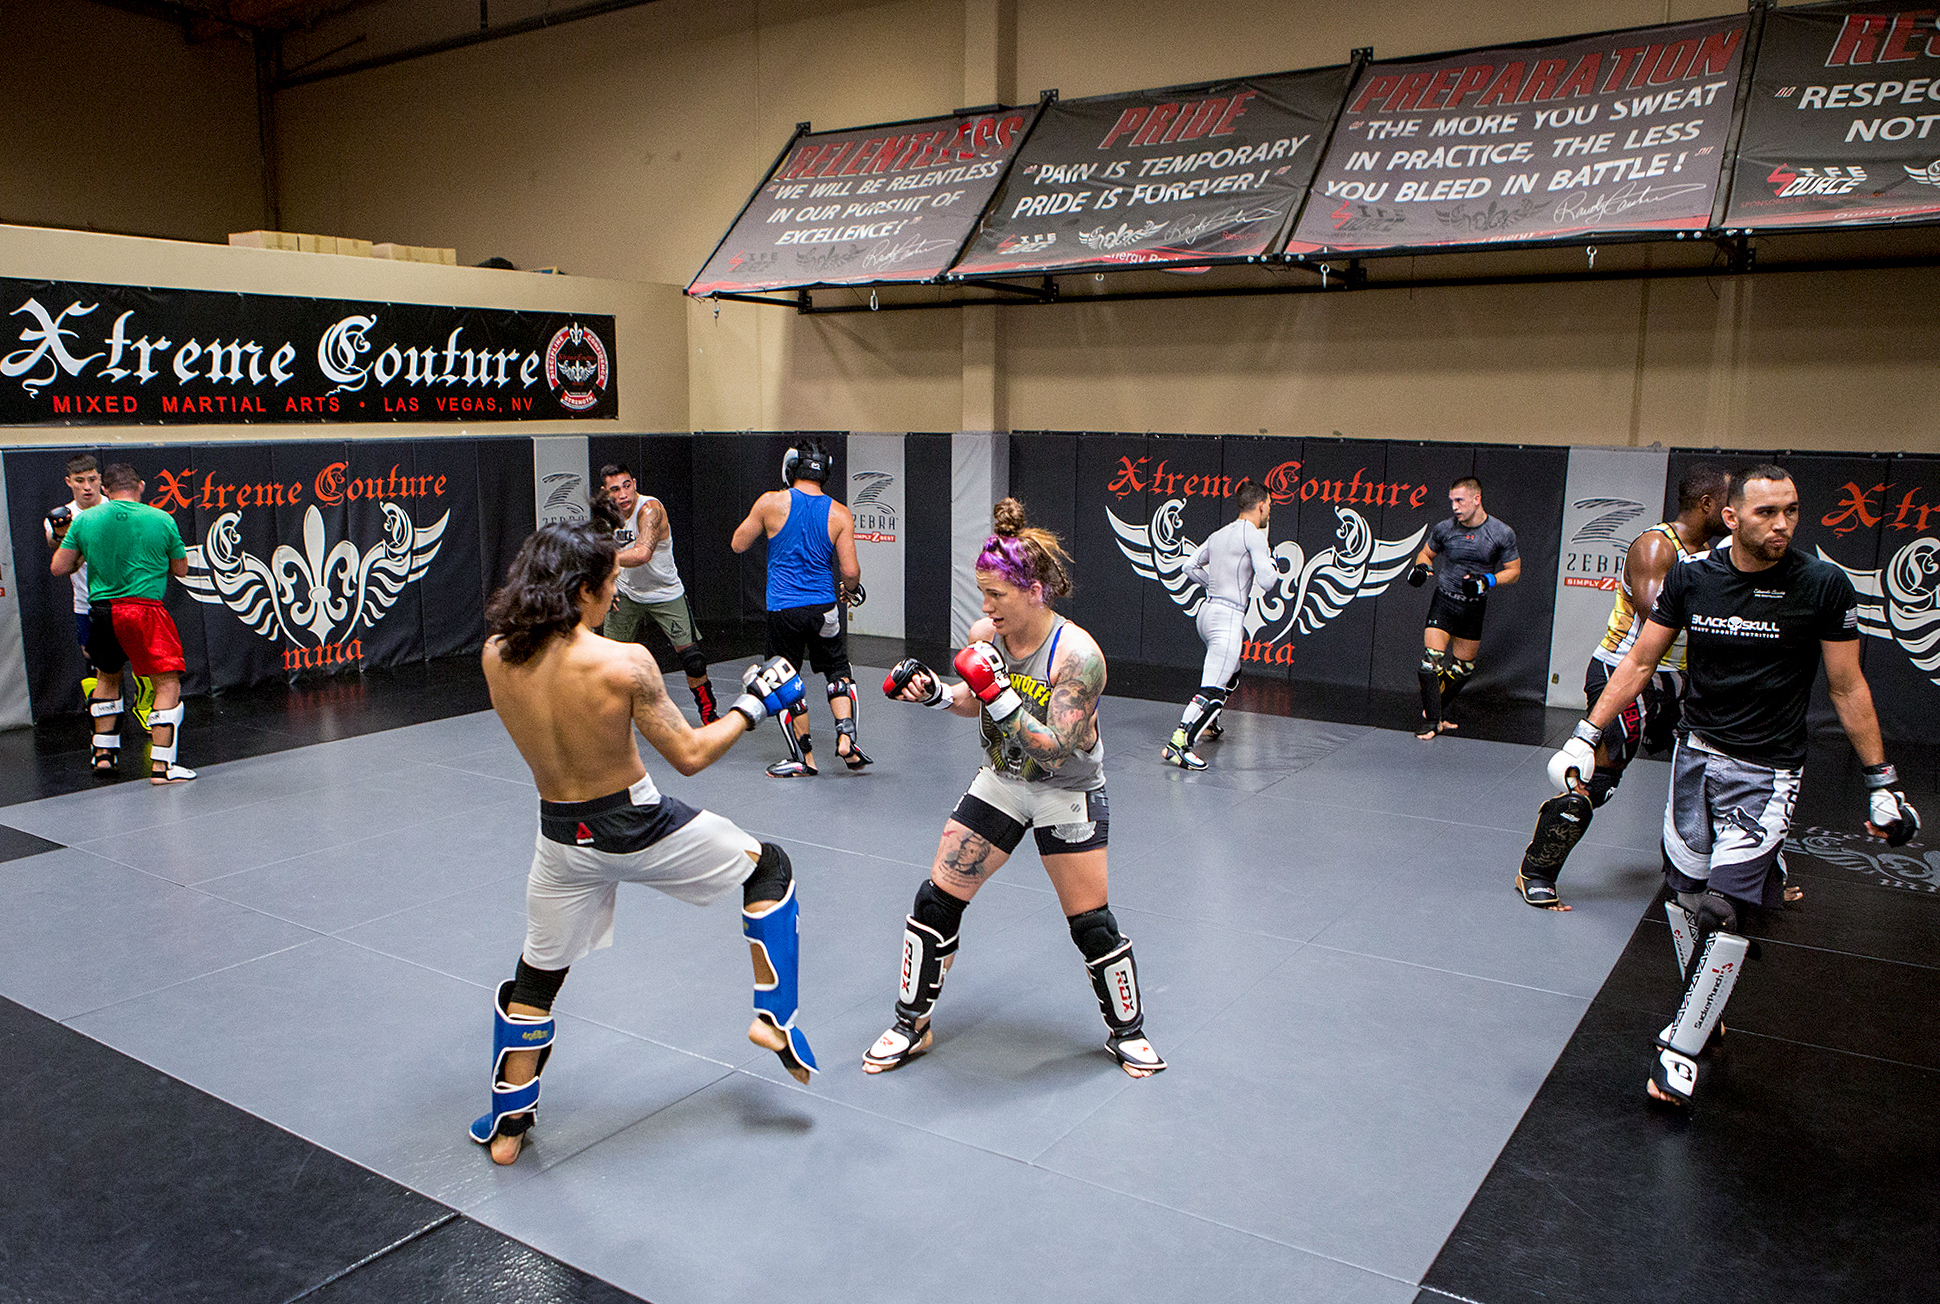 Mazany, center, spars with Puni Pagaoa during a training session. Many women in MMA regularly spar with male fighters. (Bridget Bennett/For NPR)